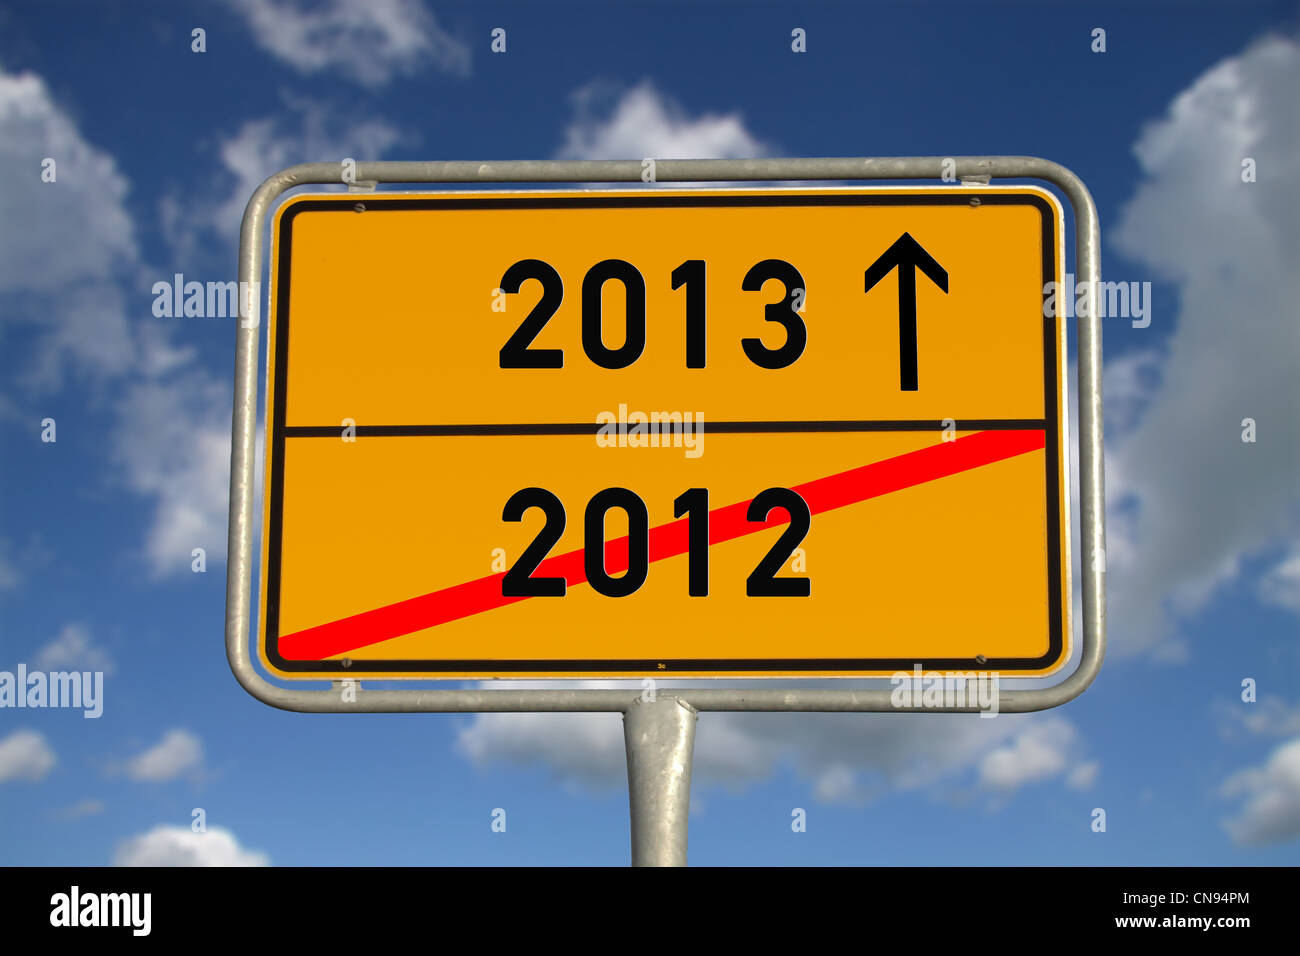 German road sign traffic 2012 and 2013 with blue sky and white clouds - Stock Image